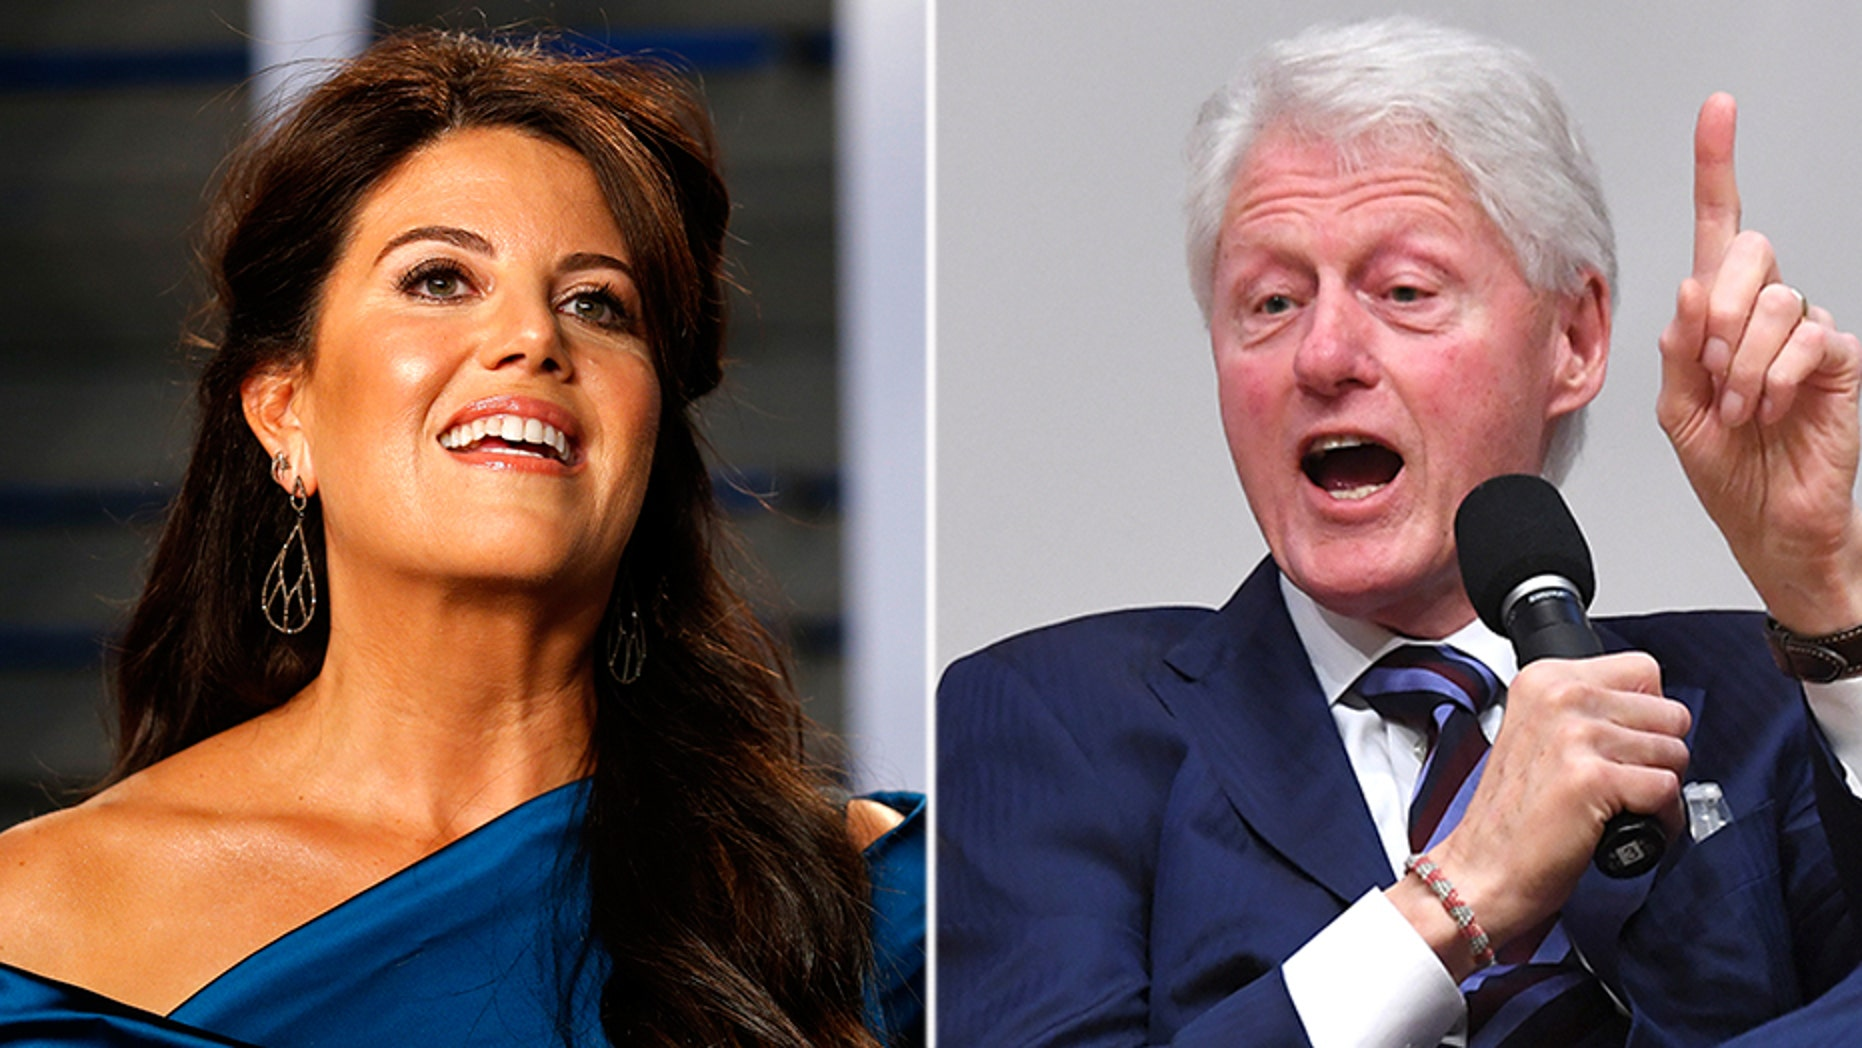 Monica Lewinsky said Wednesday she was uninvited from an event on social change after former President Bill Clinton decided to attend.